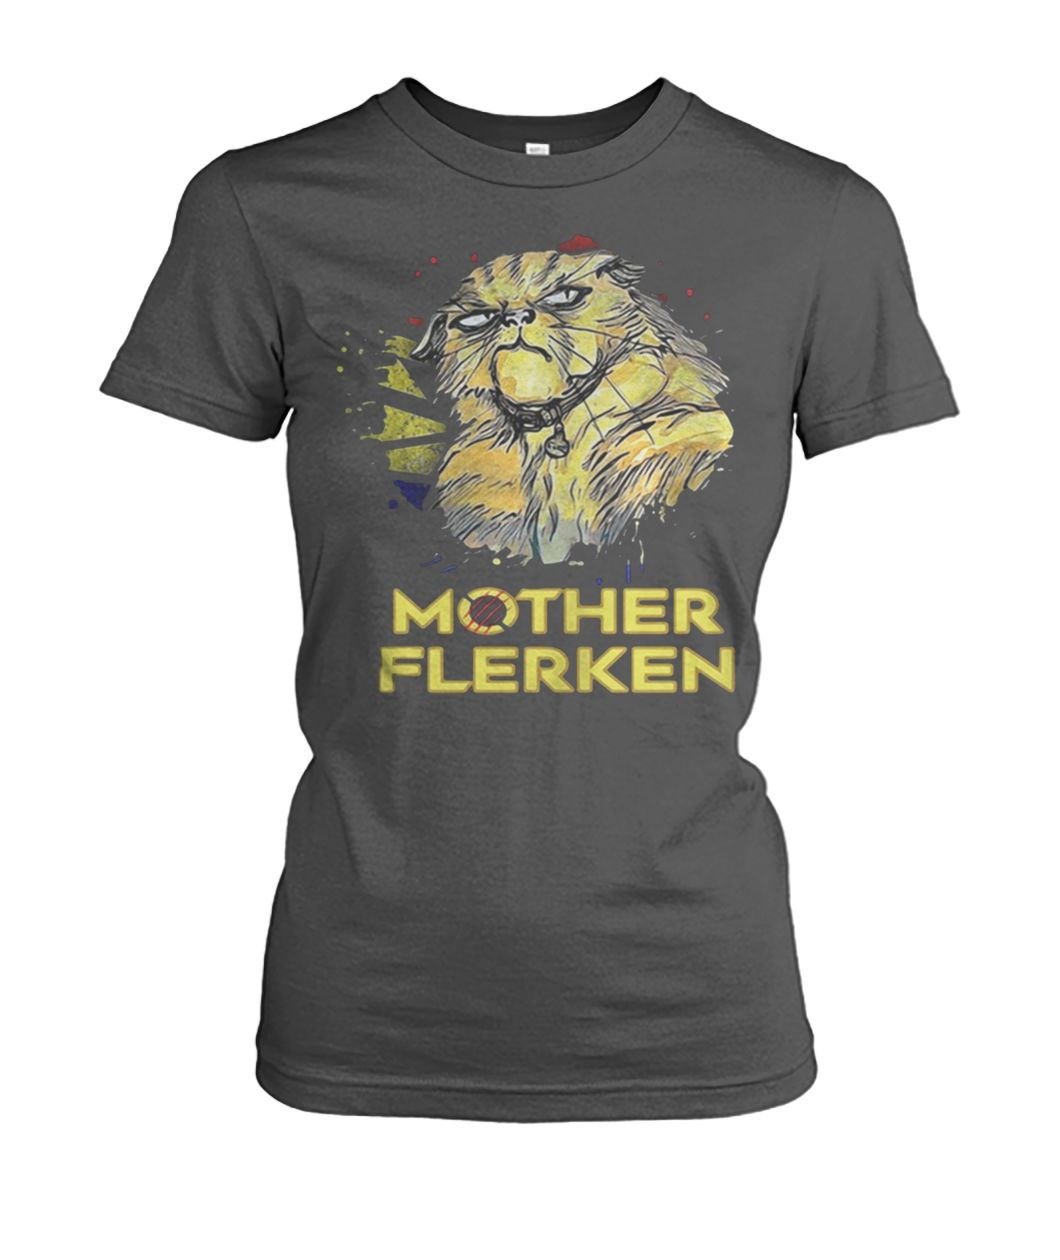 Captain marvel goose cat mother flerken women's crew tee